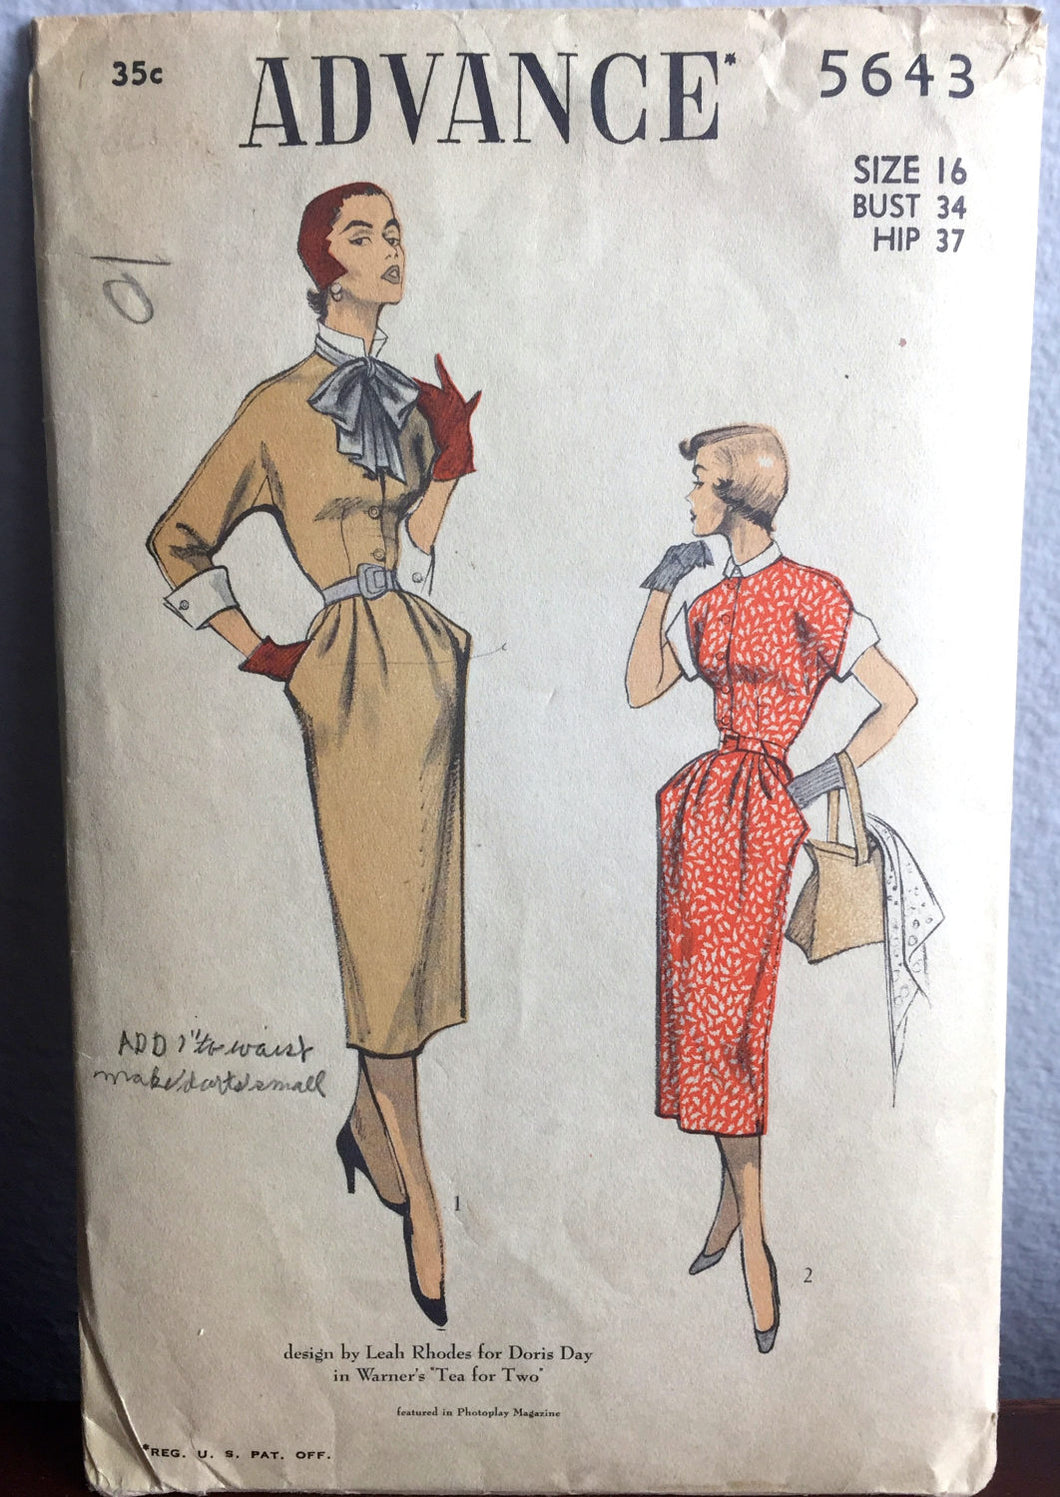 1950's Advance One-Piece Dress with Kimono sleeves, Cuffs, and Large Bow Pattern - Bust 34